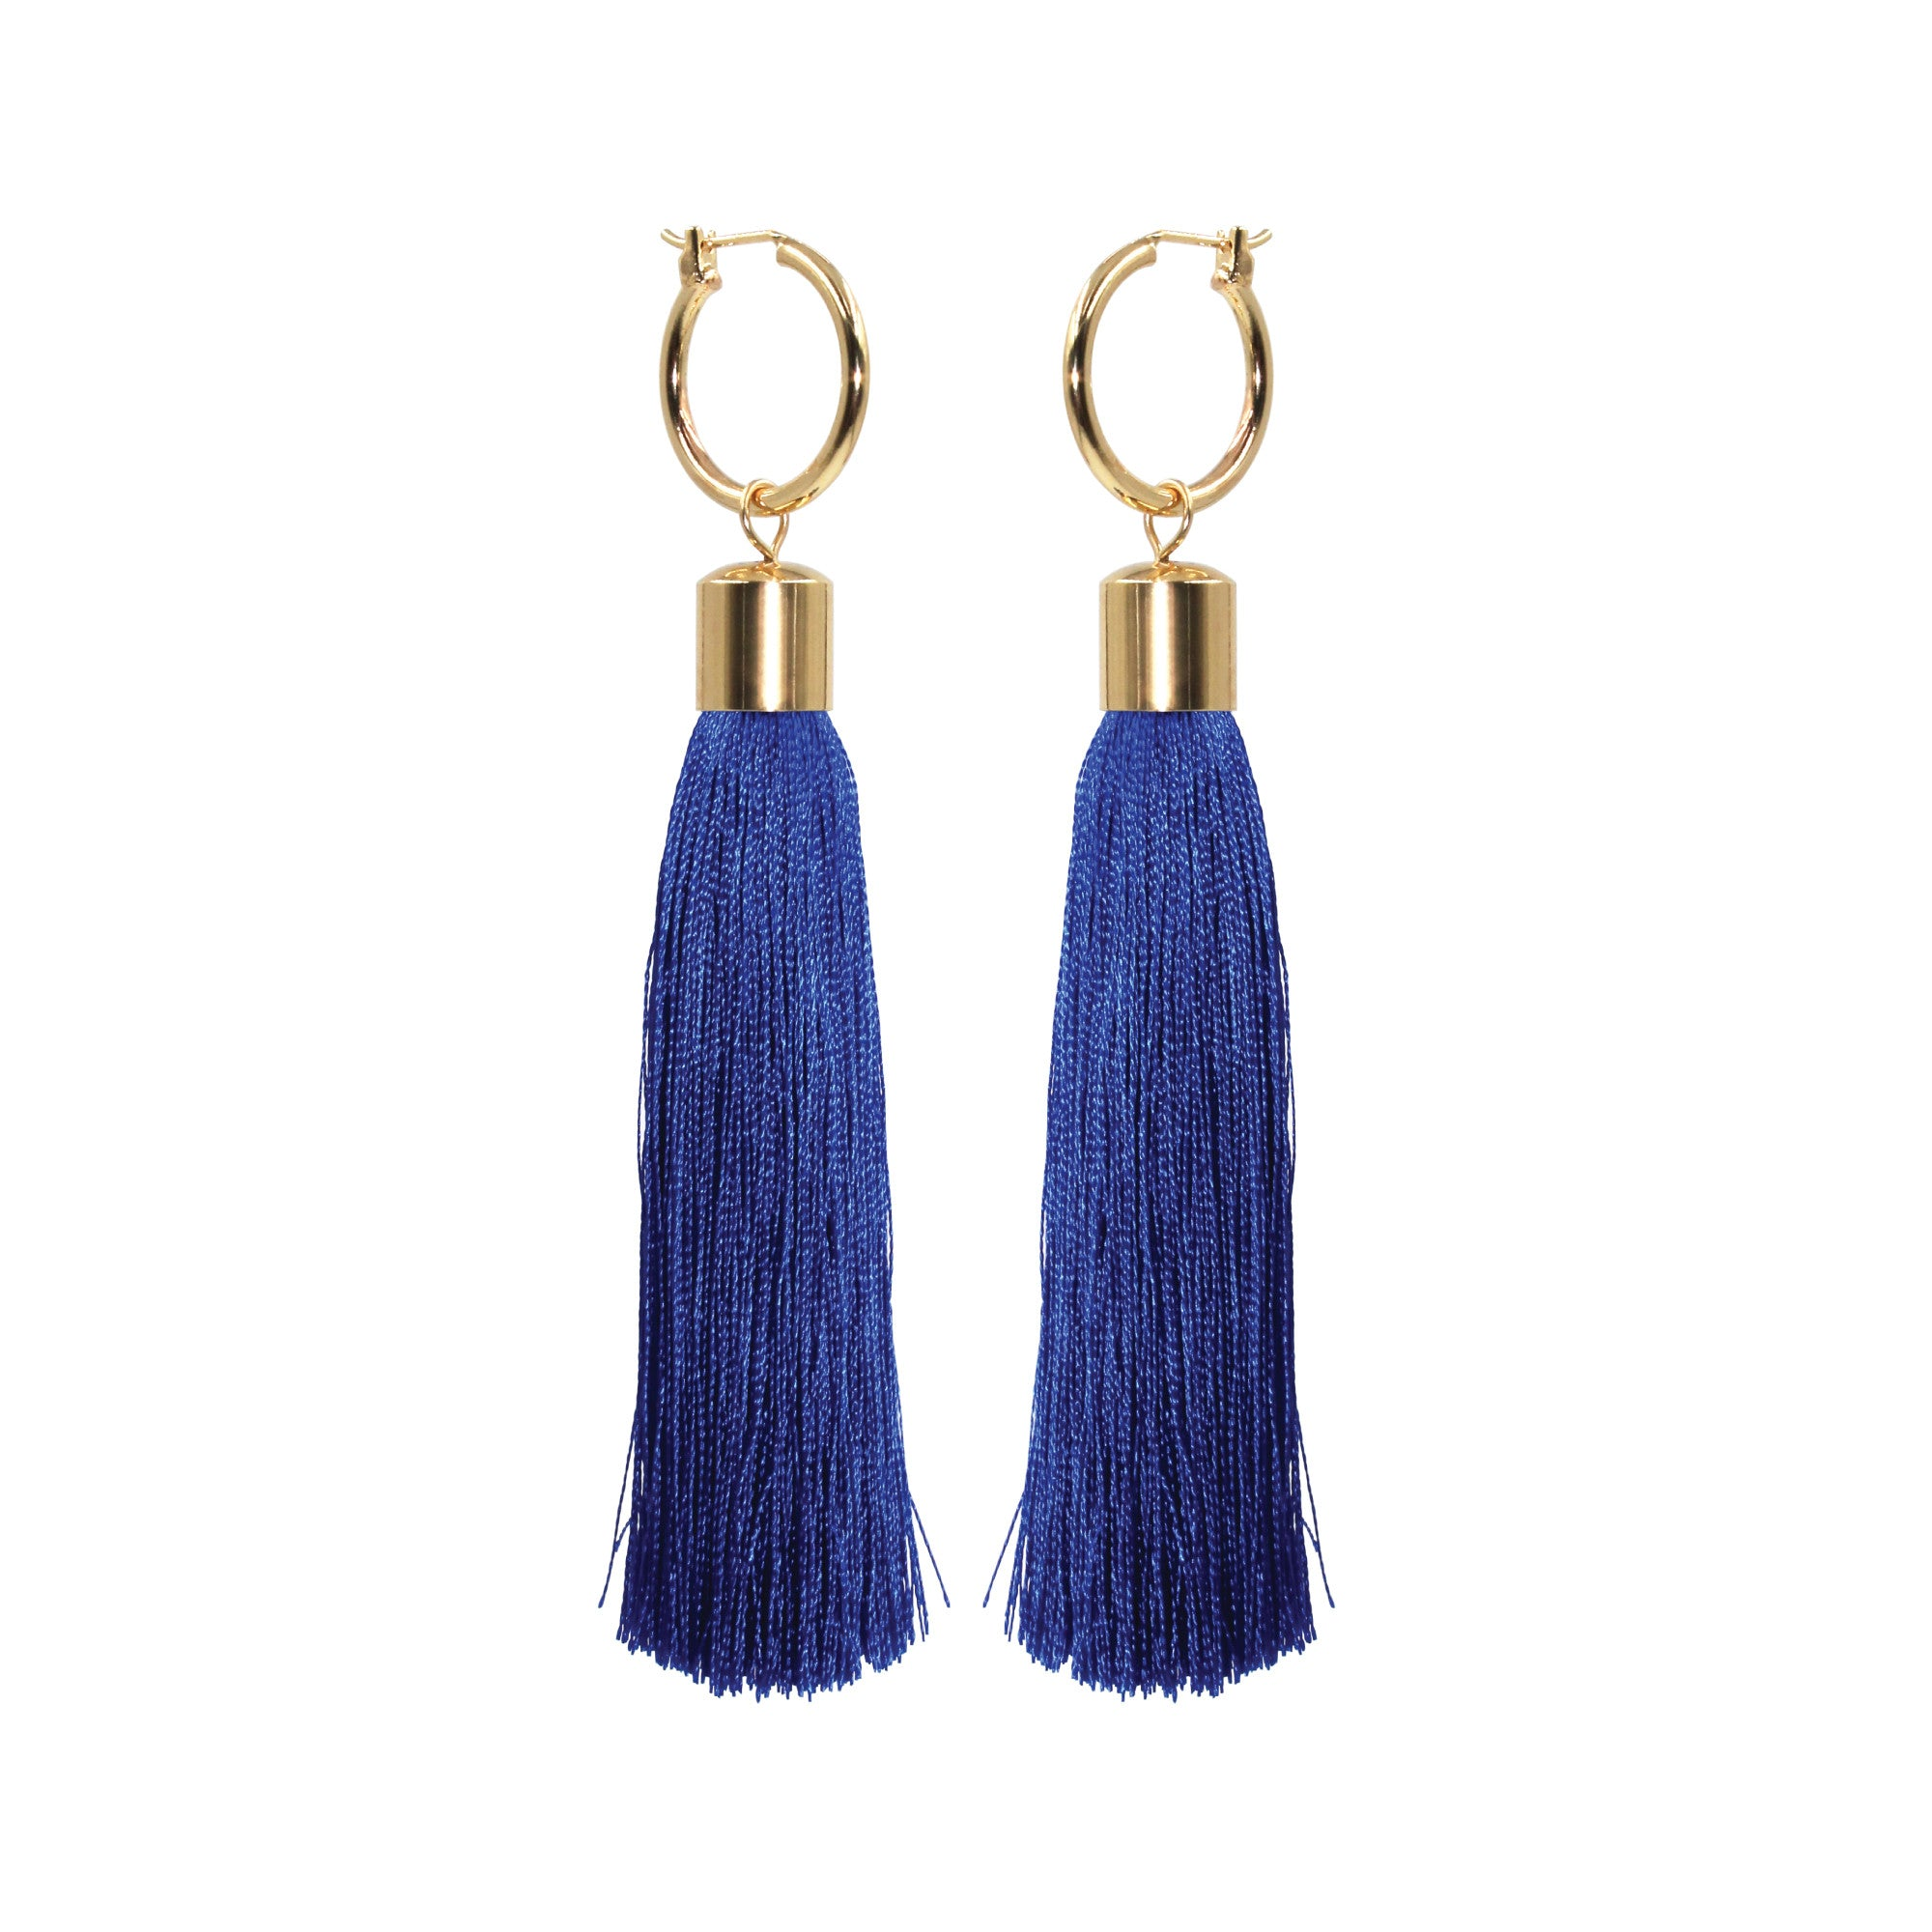 straw earrings fringe chandelier crystal jewelry products the tory enlarged burch